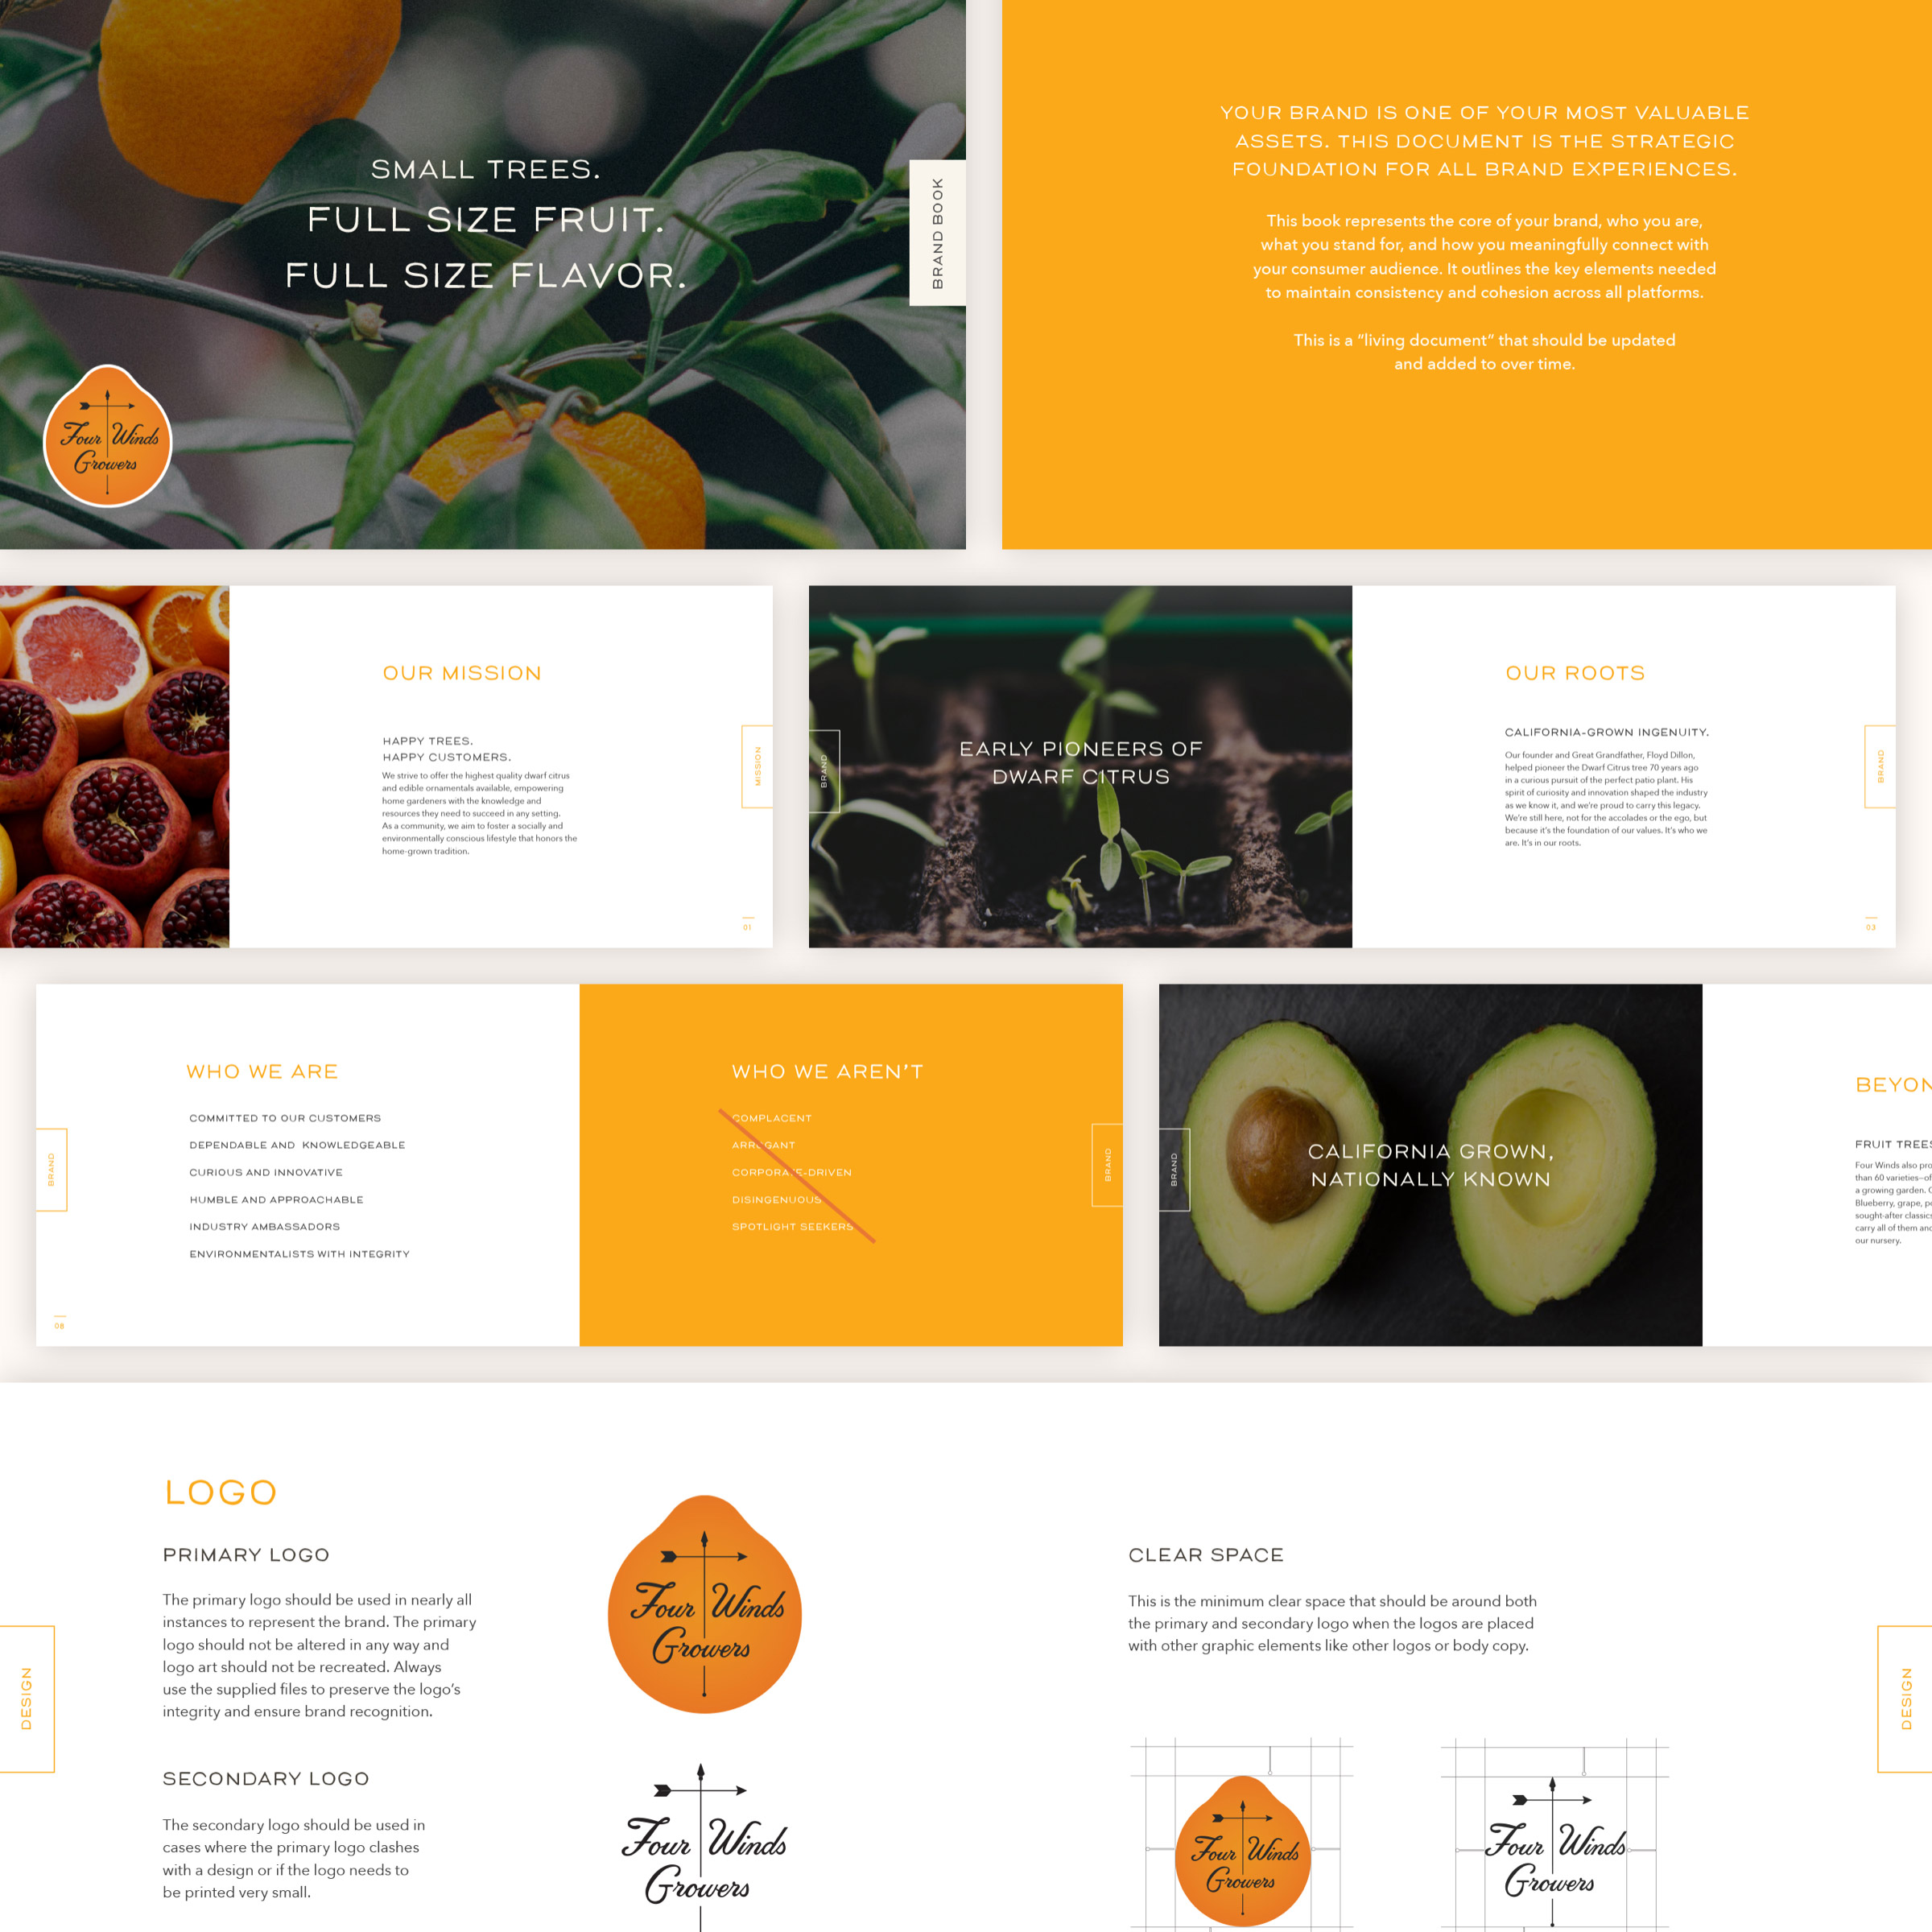 Four Winds Growers - Brand Book sample pages